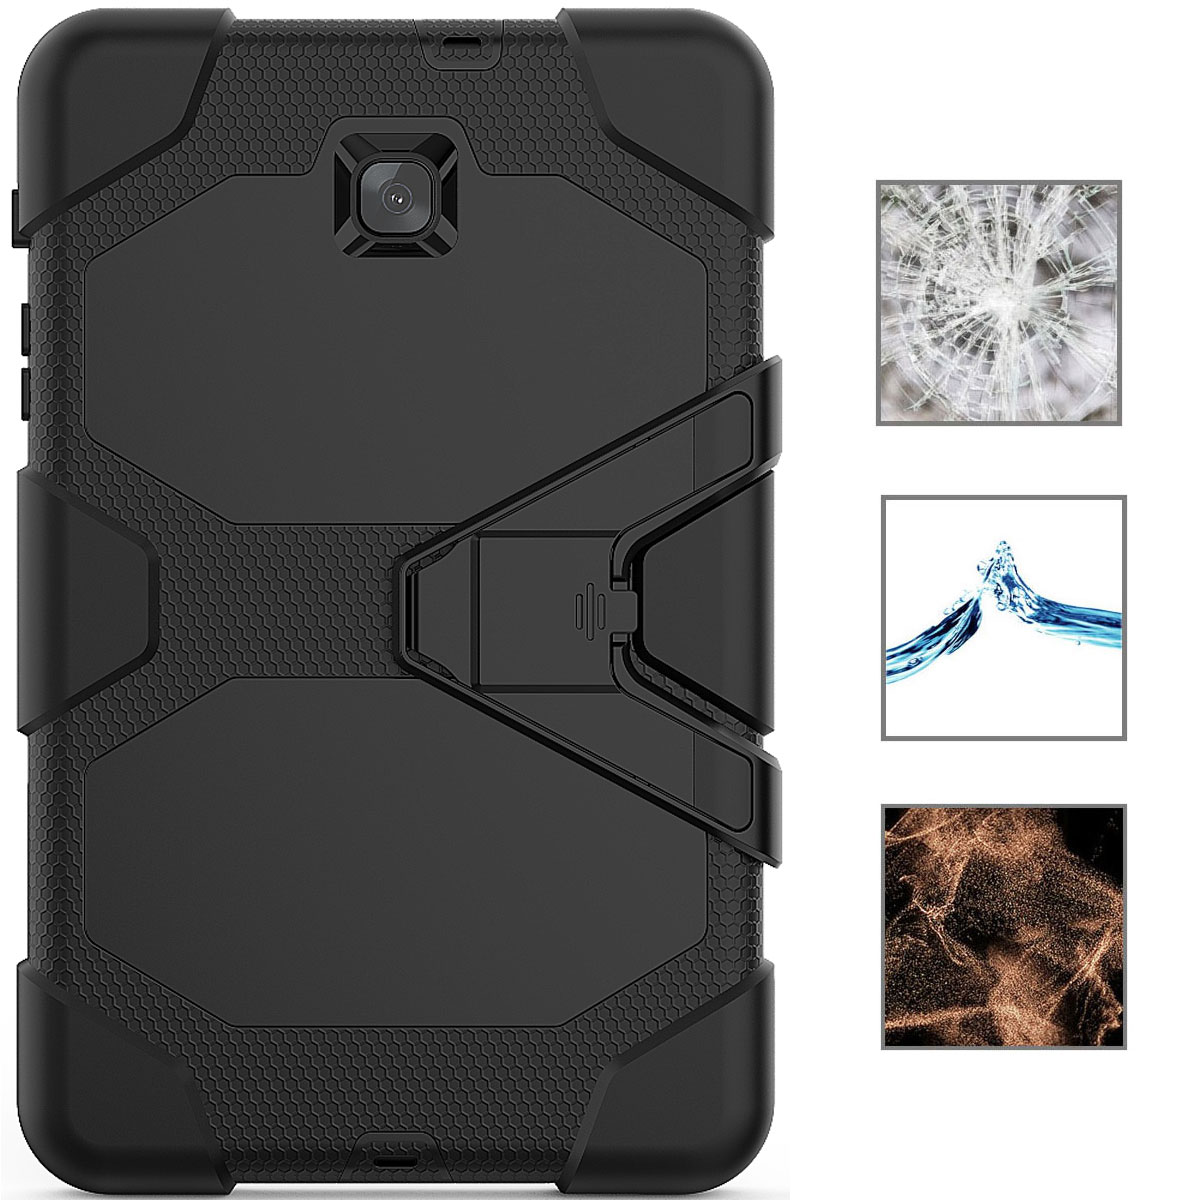 Rugged-Hard-Case-For-Samsung-Galaxy-Tab-A-8-0-2018-SM-T387-with-Screen-Protector thumbnail 59